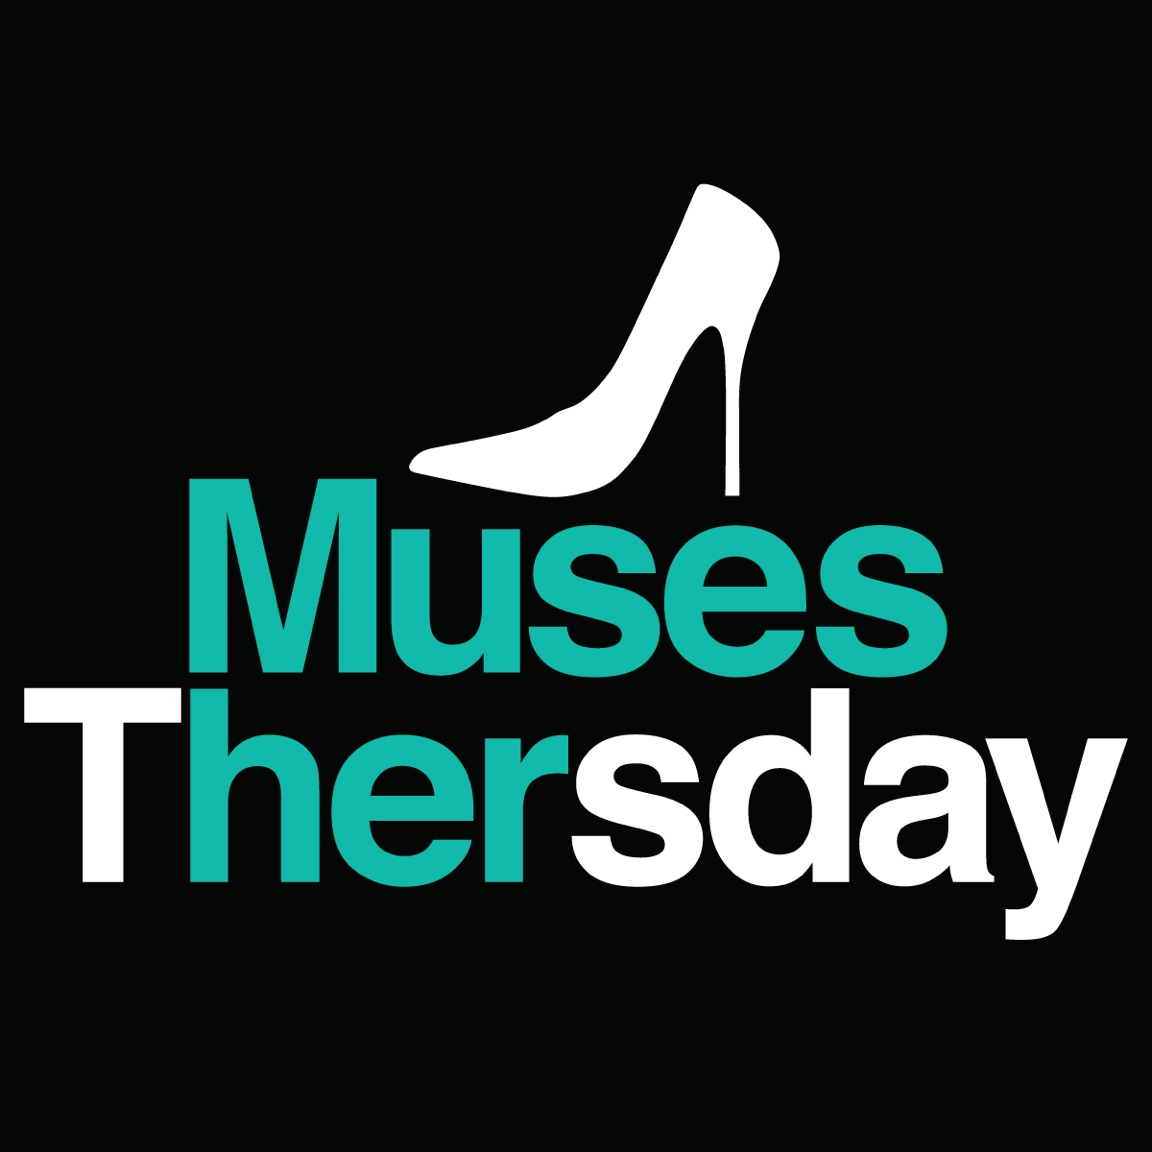 Muses is an all female krewe that always rolls on Thursday. Switching up a little spelling seemed like the perfect twist for a tagline...